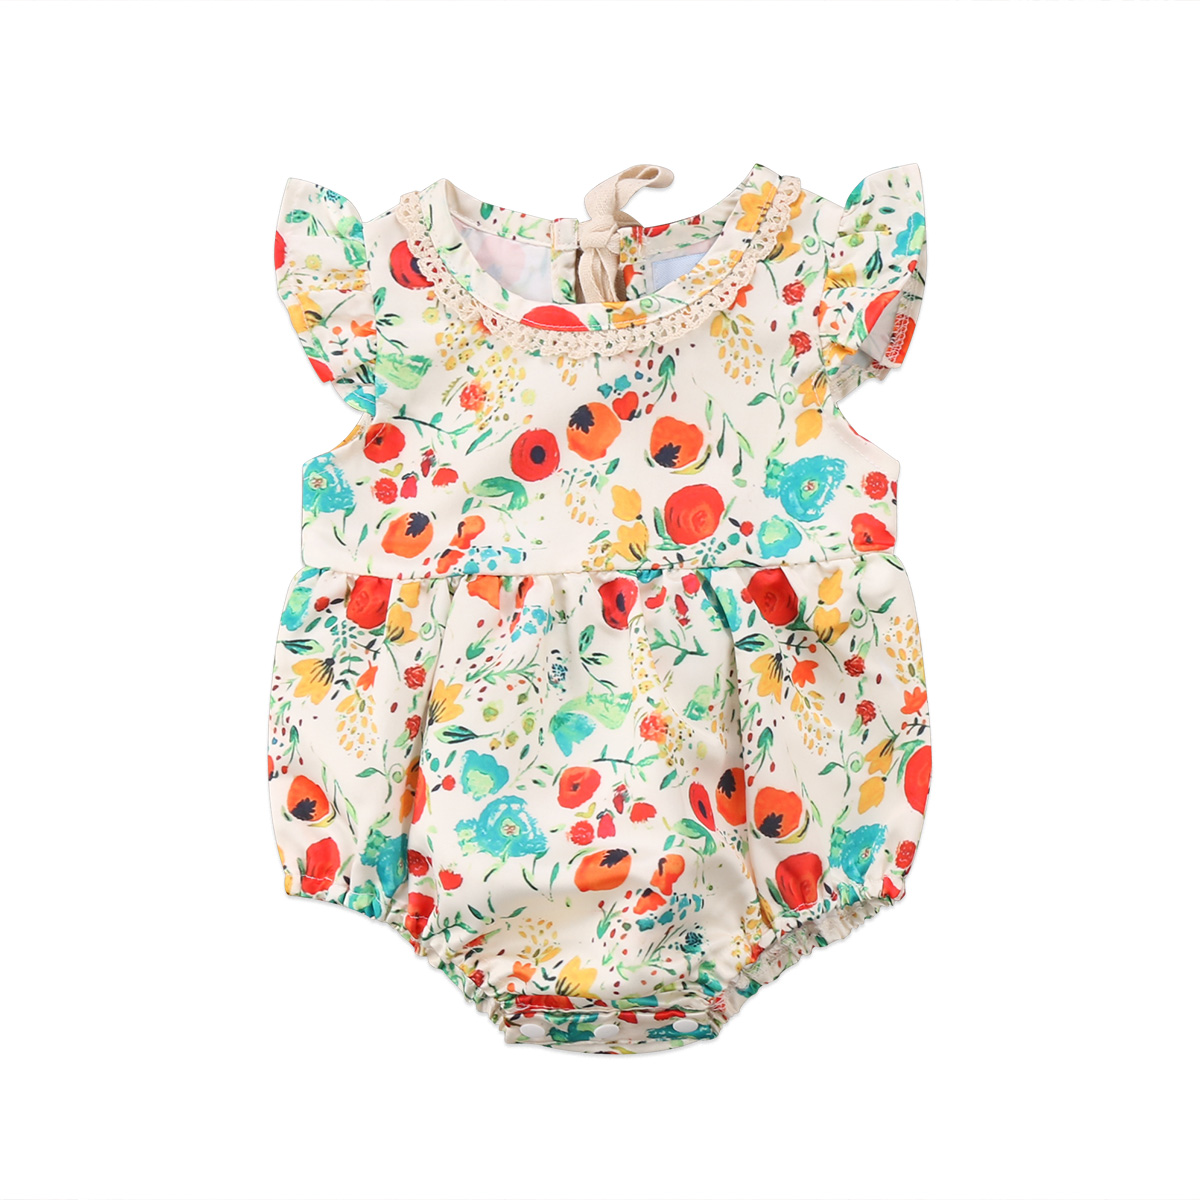 Flower Baby Girls Clothing Newborn Infant Baby Girl Floral Playsuit Jumpsuit Romper Outfits Clothes Set 0-2T